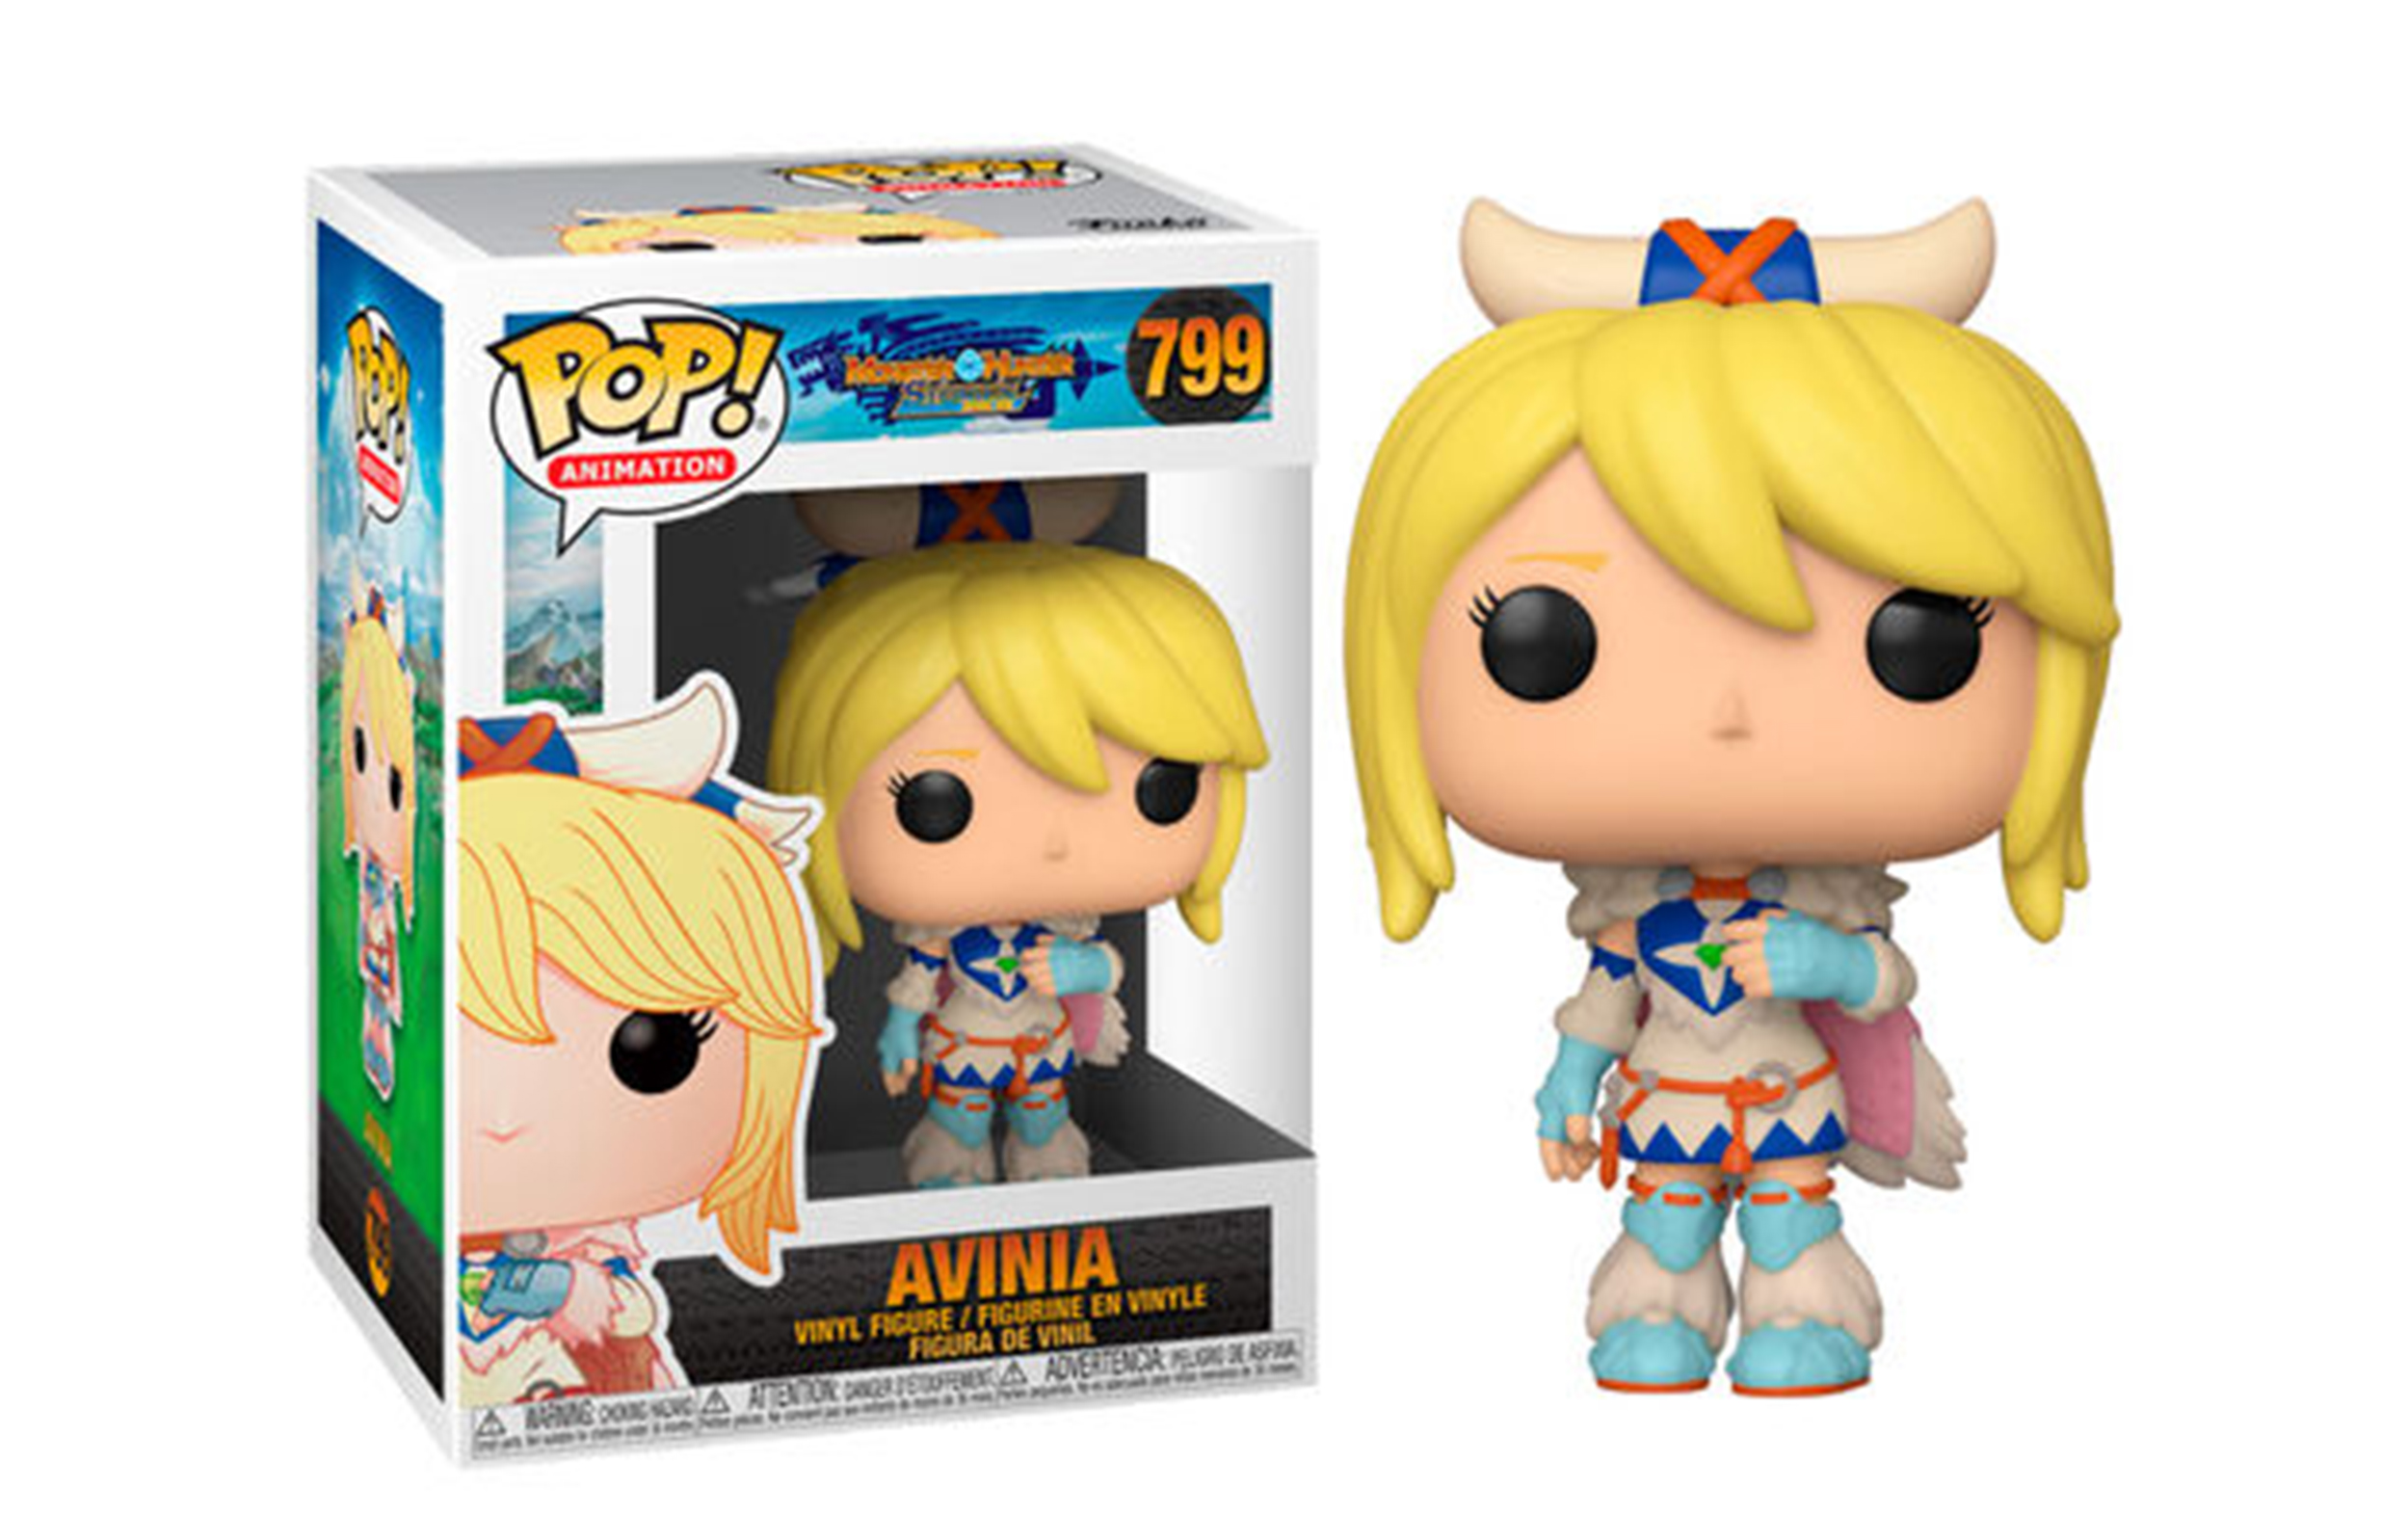 Monster Hunter Avinia 799 Funko POP Vinyl Figure